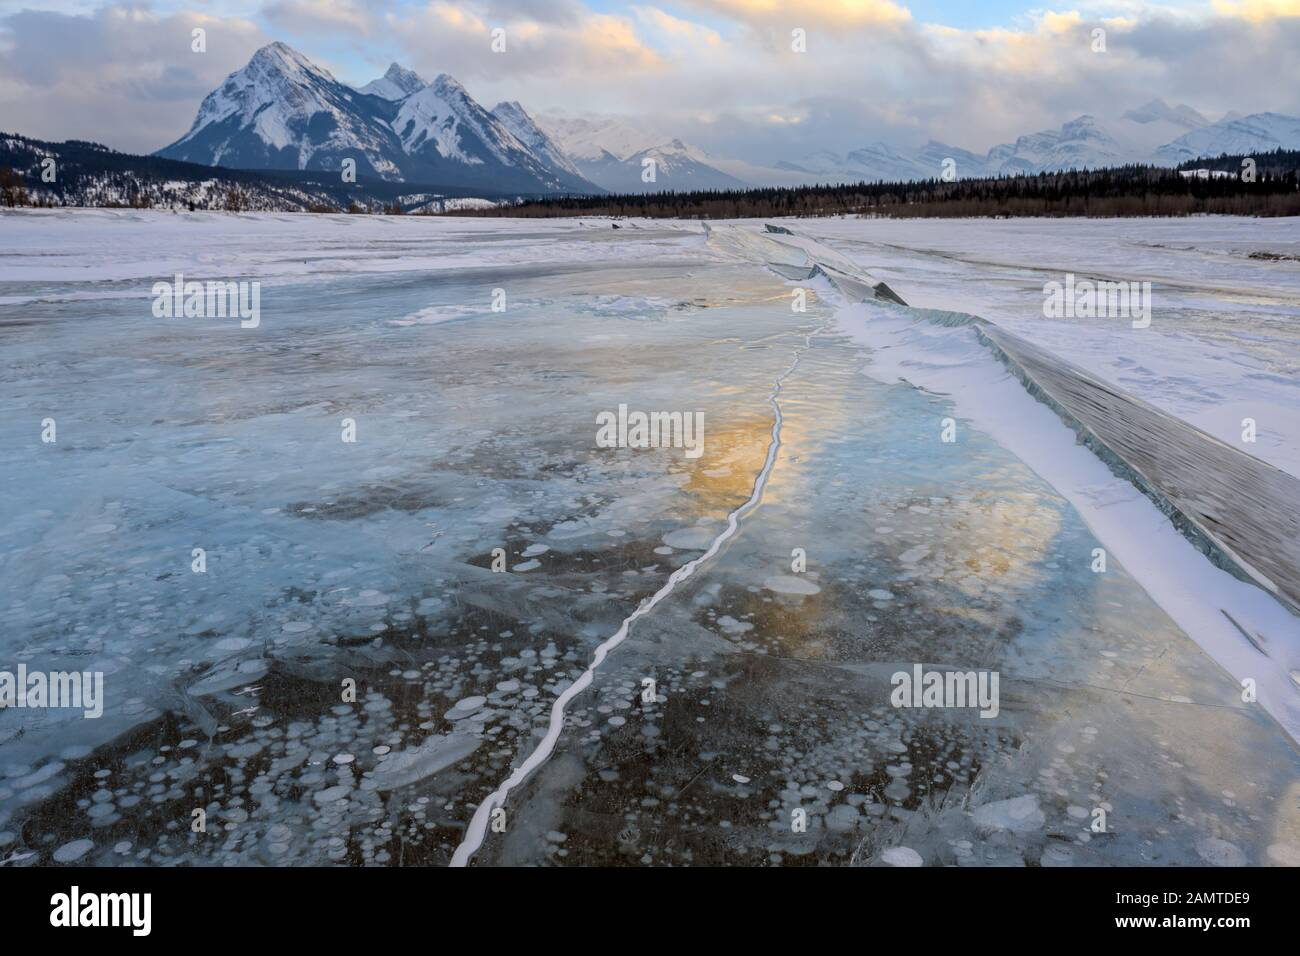 Trapped methane bubbles frozen into the water under the thick cracked and folded ice on Abraham Lake Stock Photo